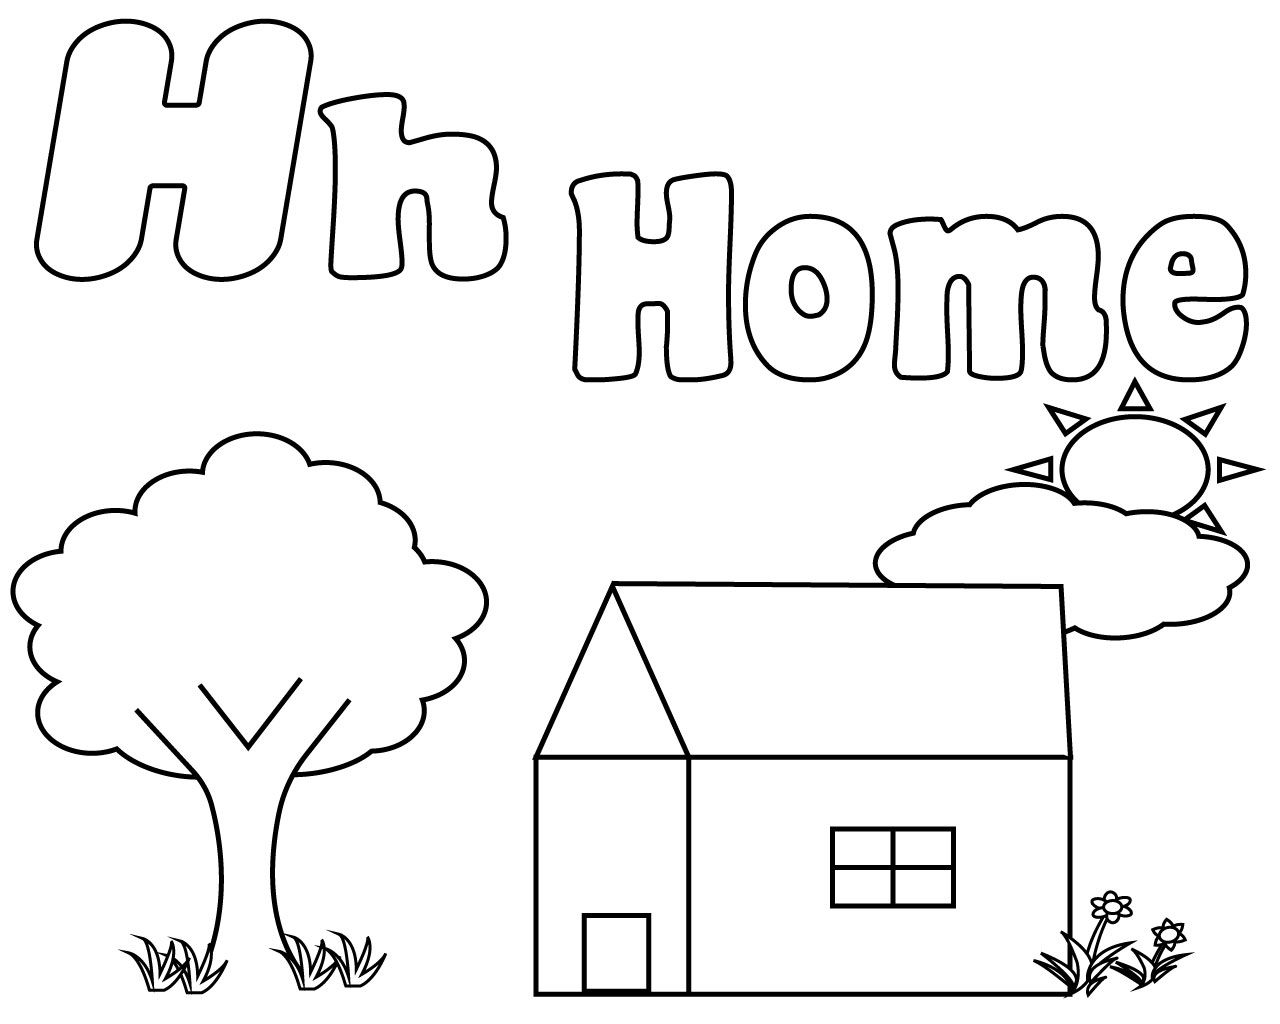 Free Printable Letter H Coloring Pages For Kids Coloring Pages